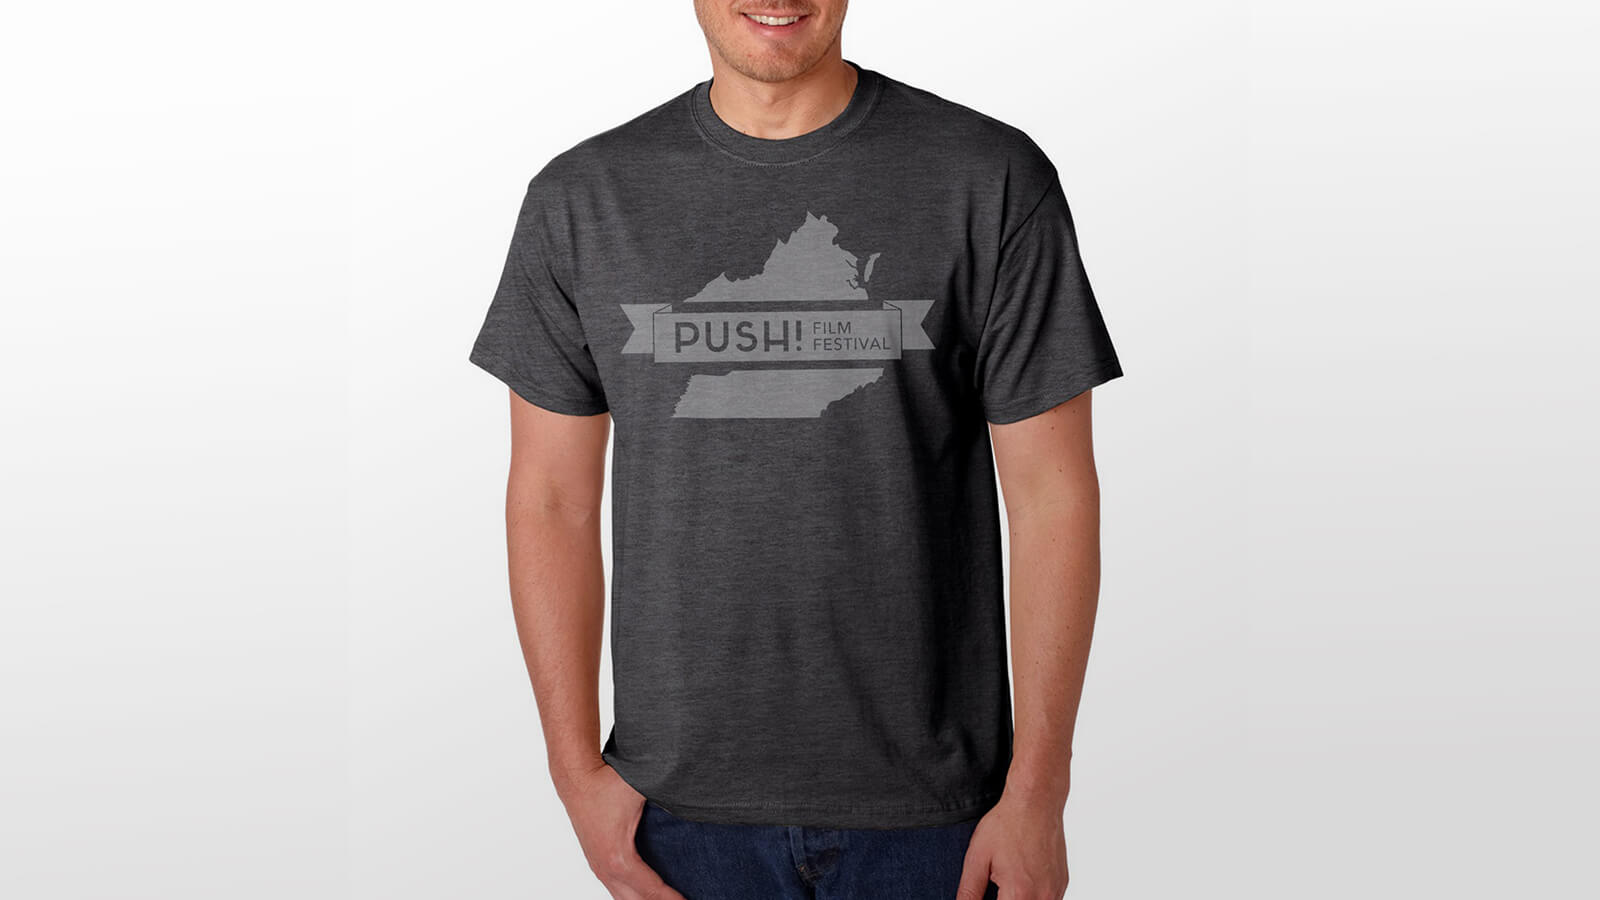 PUSH! Film Festival T-Shirt